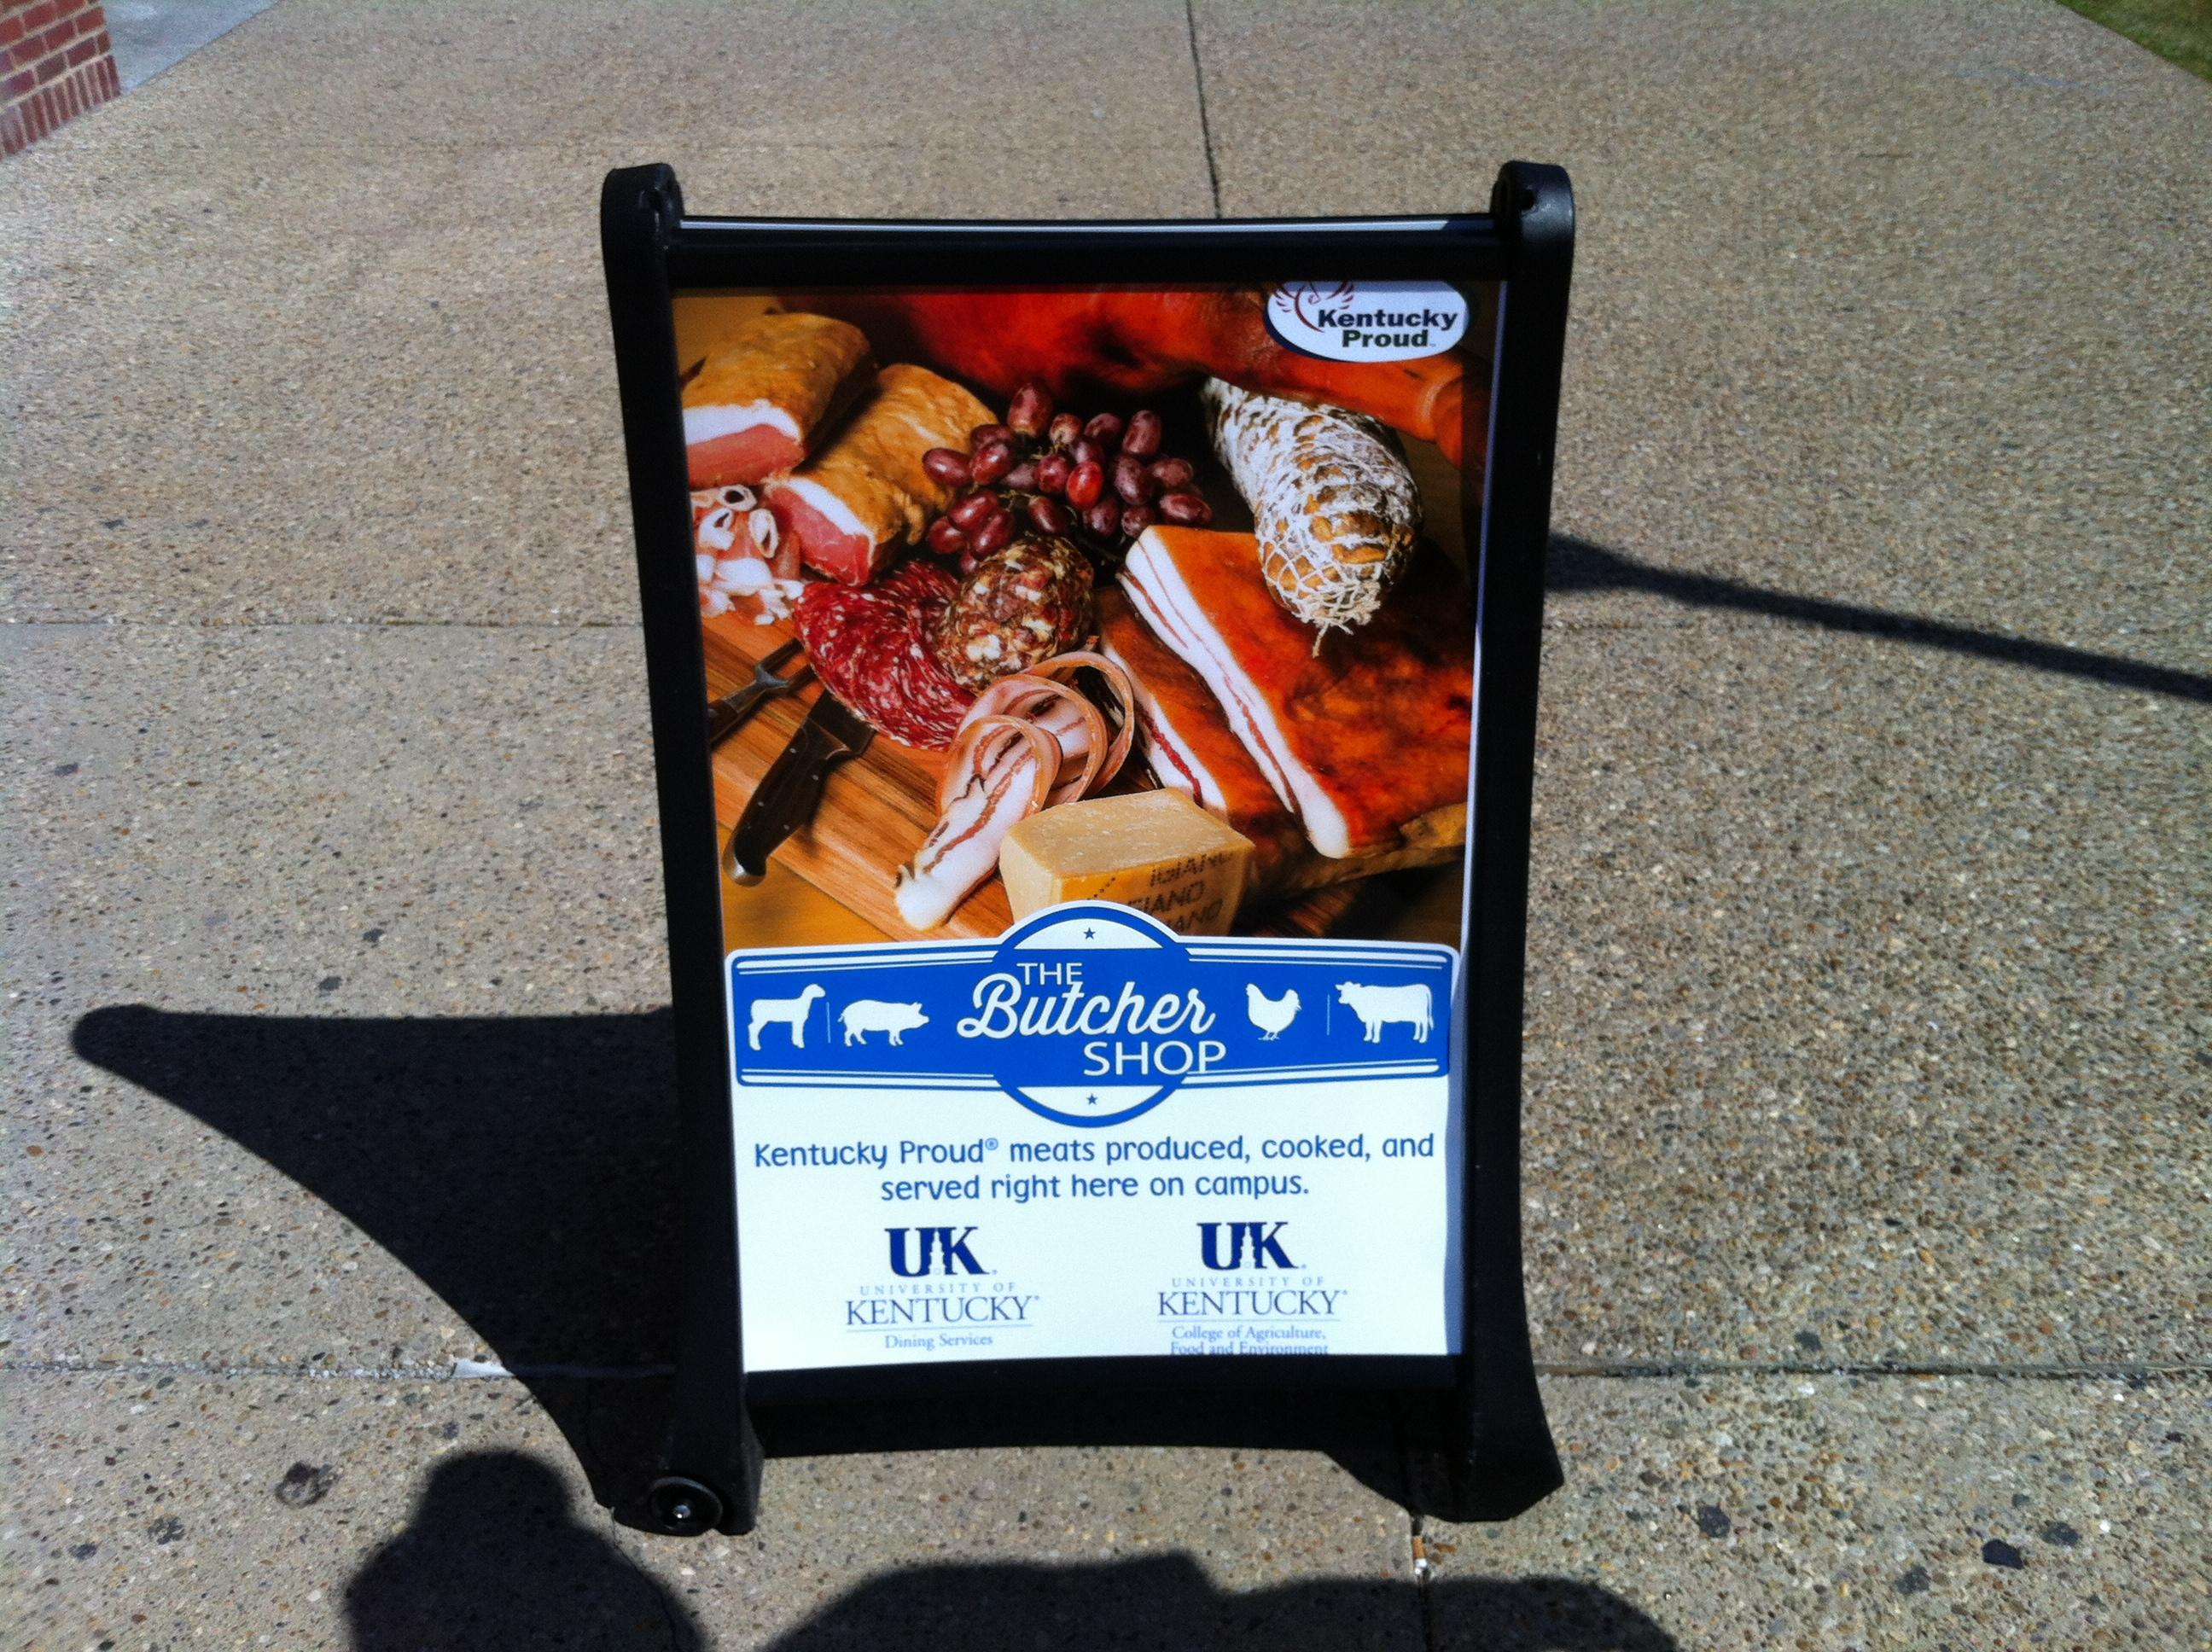 Butcher Shop sign